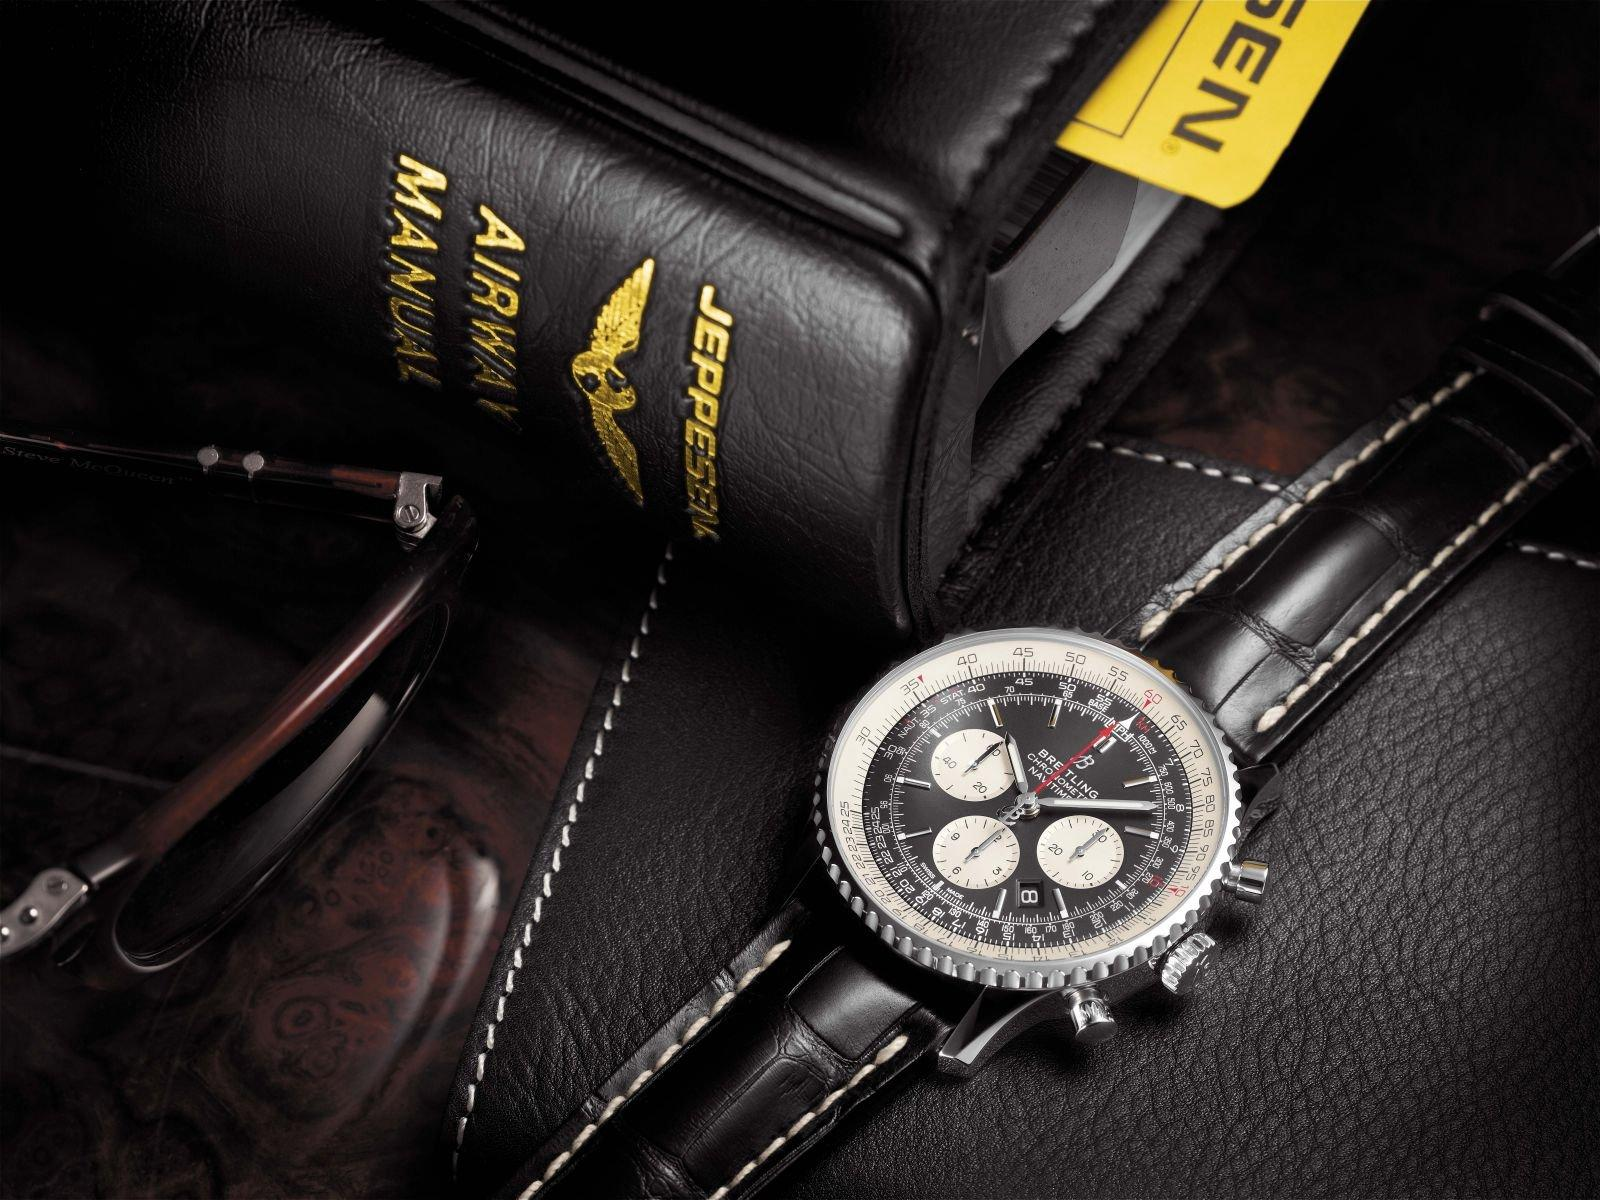 Navitimer_1_B01_Chronograph_46_with_black_dial_and_black_alligator_leather_strap_KOPIE.jpg